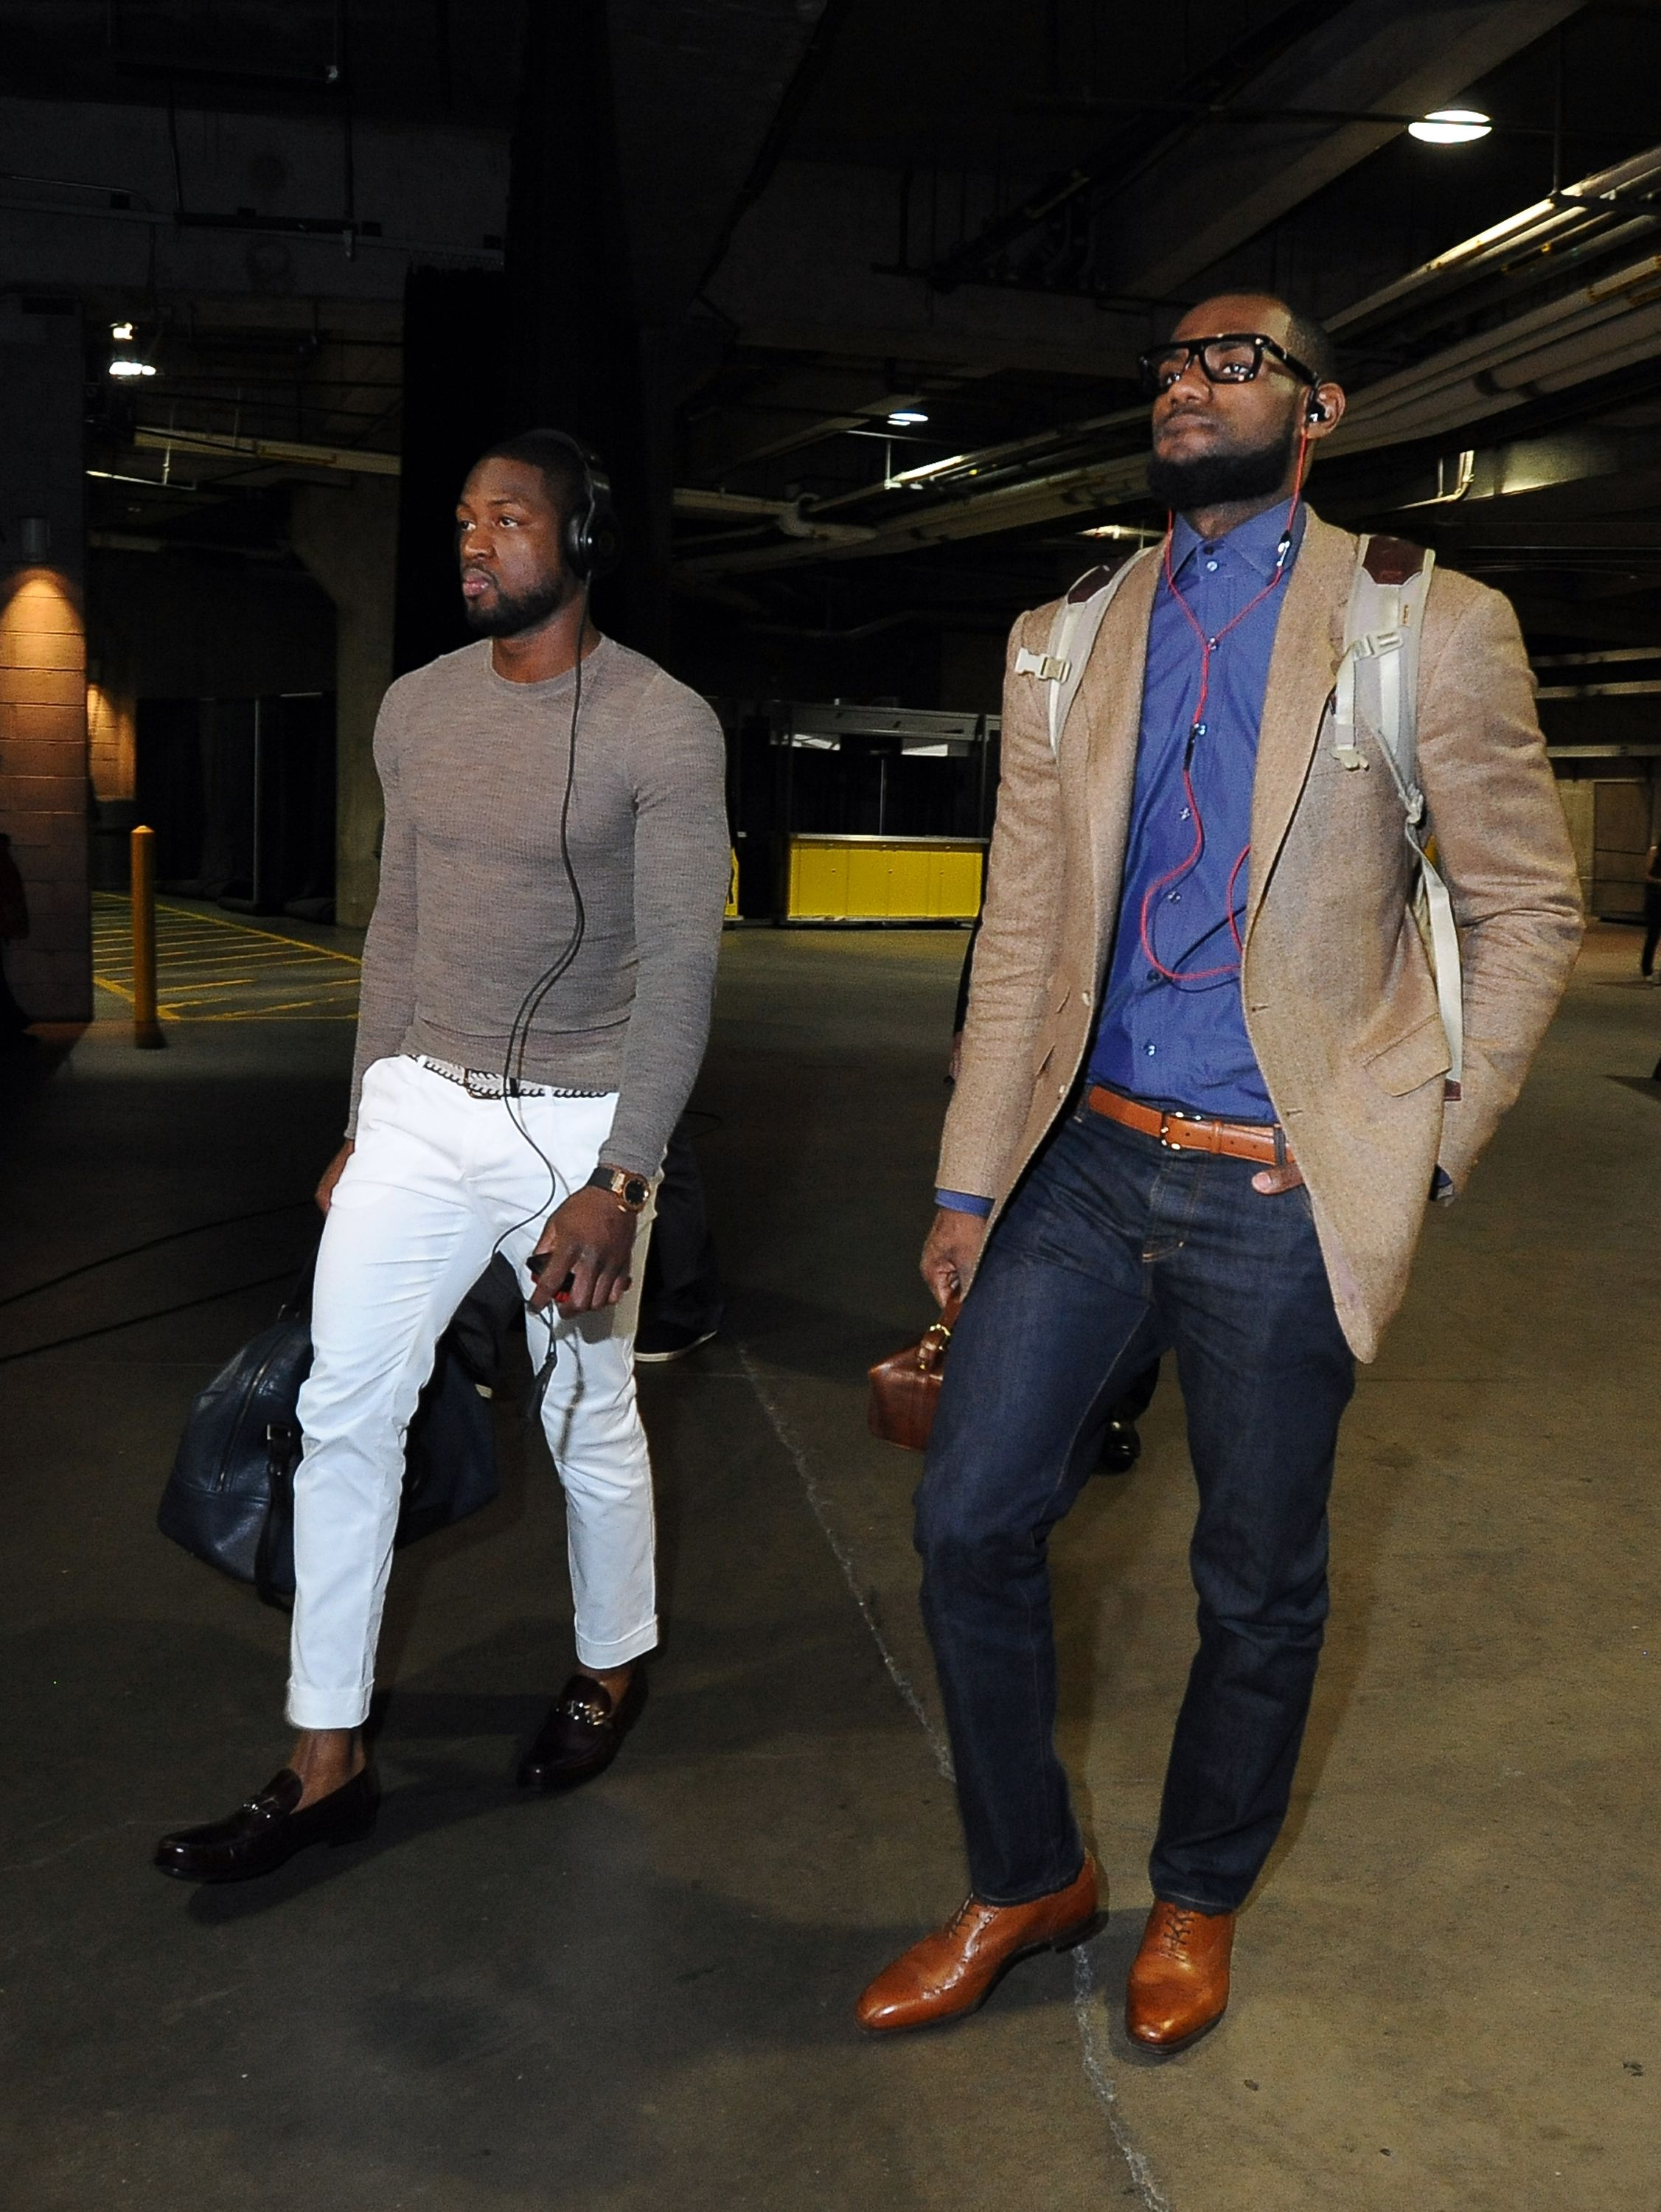 90136a1c5f5 Dwyane Wade and Lebron James enter the Staples Center in Los Angeles on  March 4th. Lebron s carrying a murse (man purse).